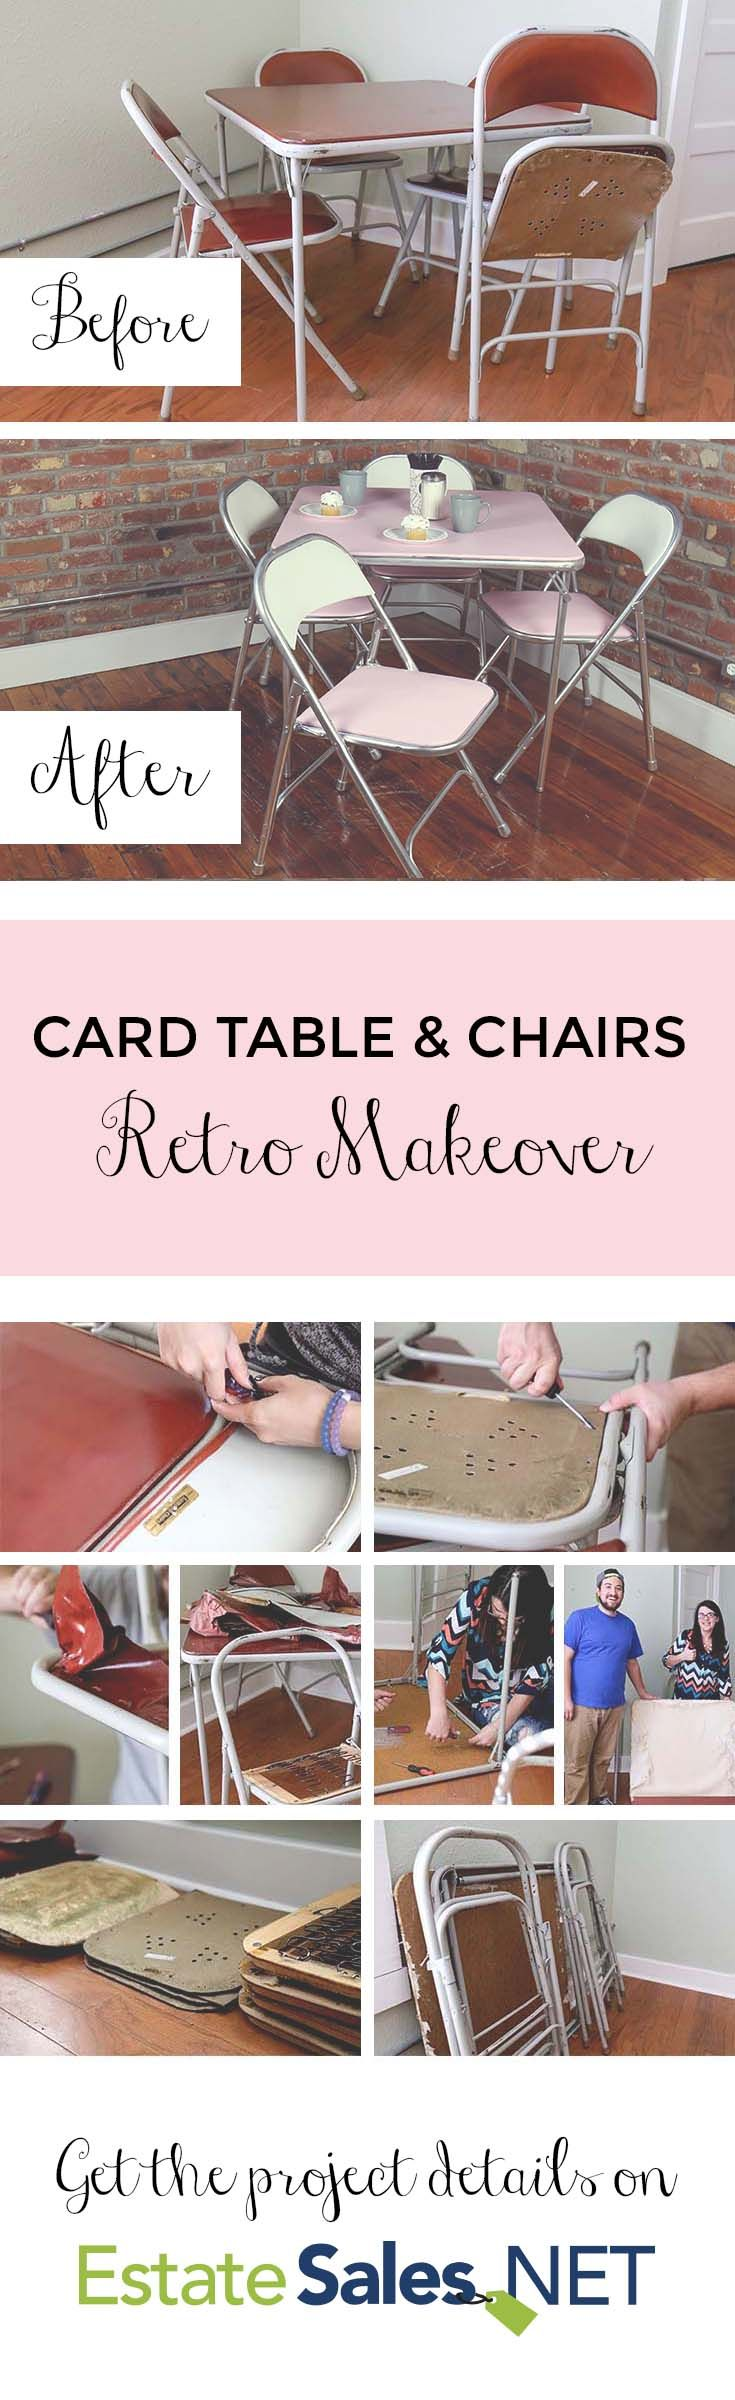 Do you repurpose or upcycle estate sale finds?  Check out our latest estate sale upcycling project on our blog where we transform this old card table we found at a local estate sale into a fun new piece!